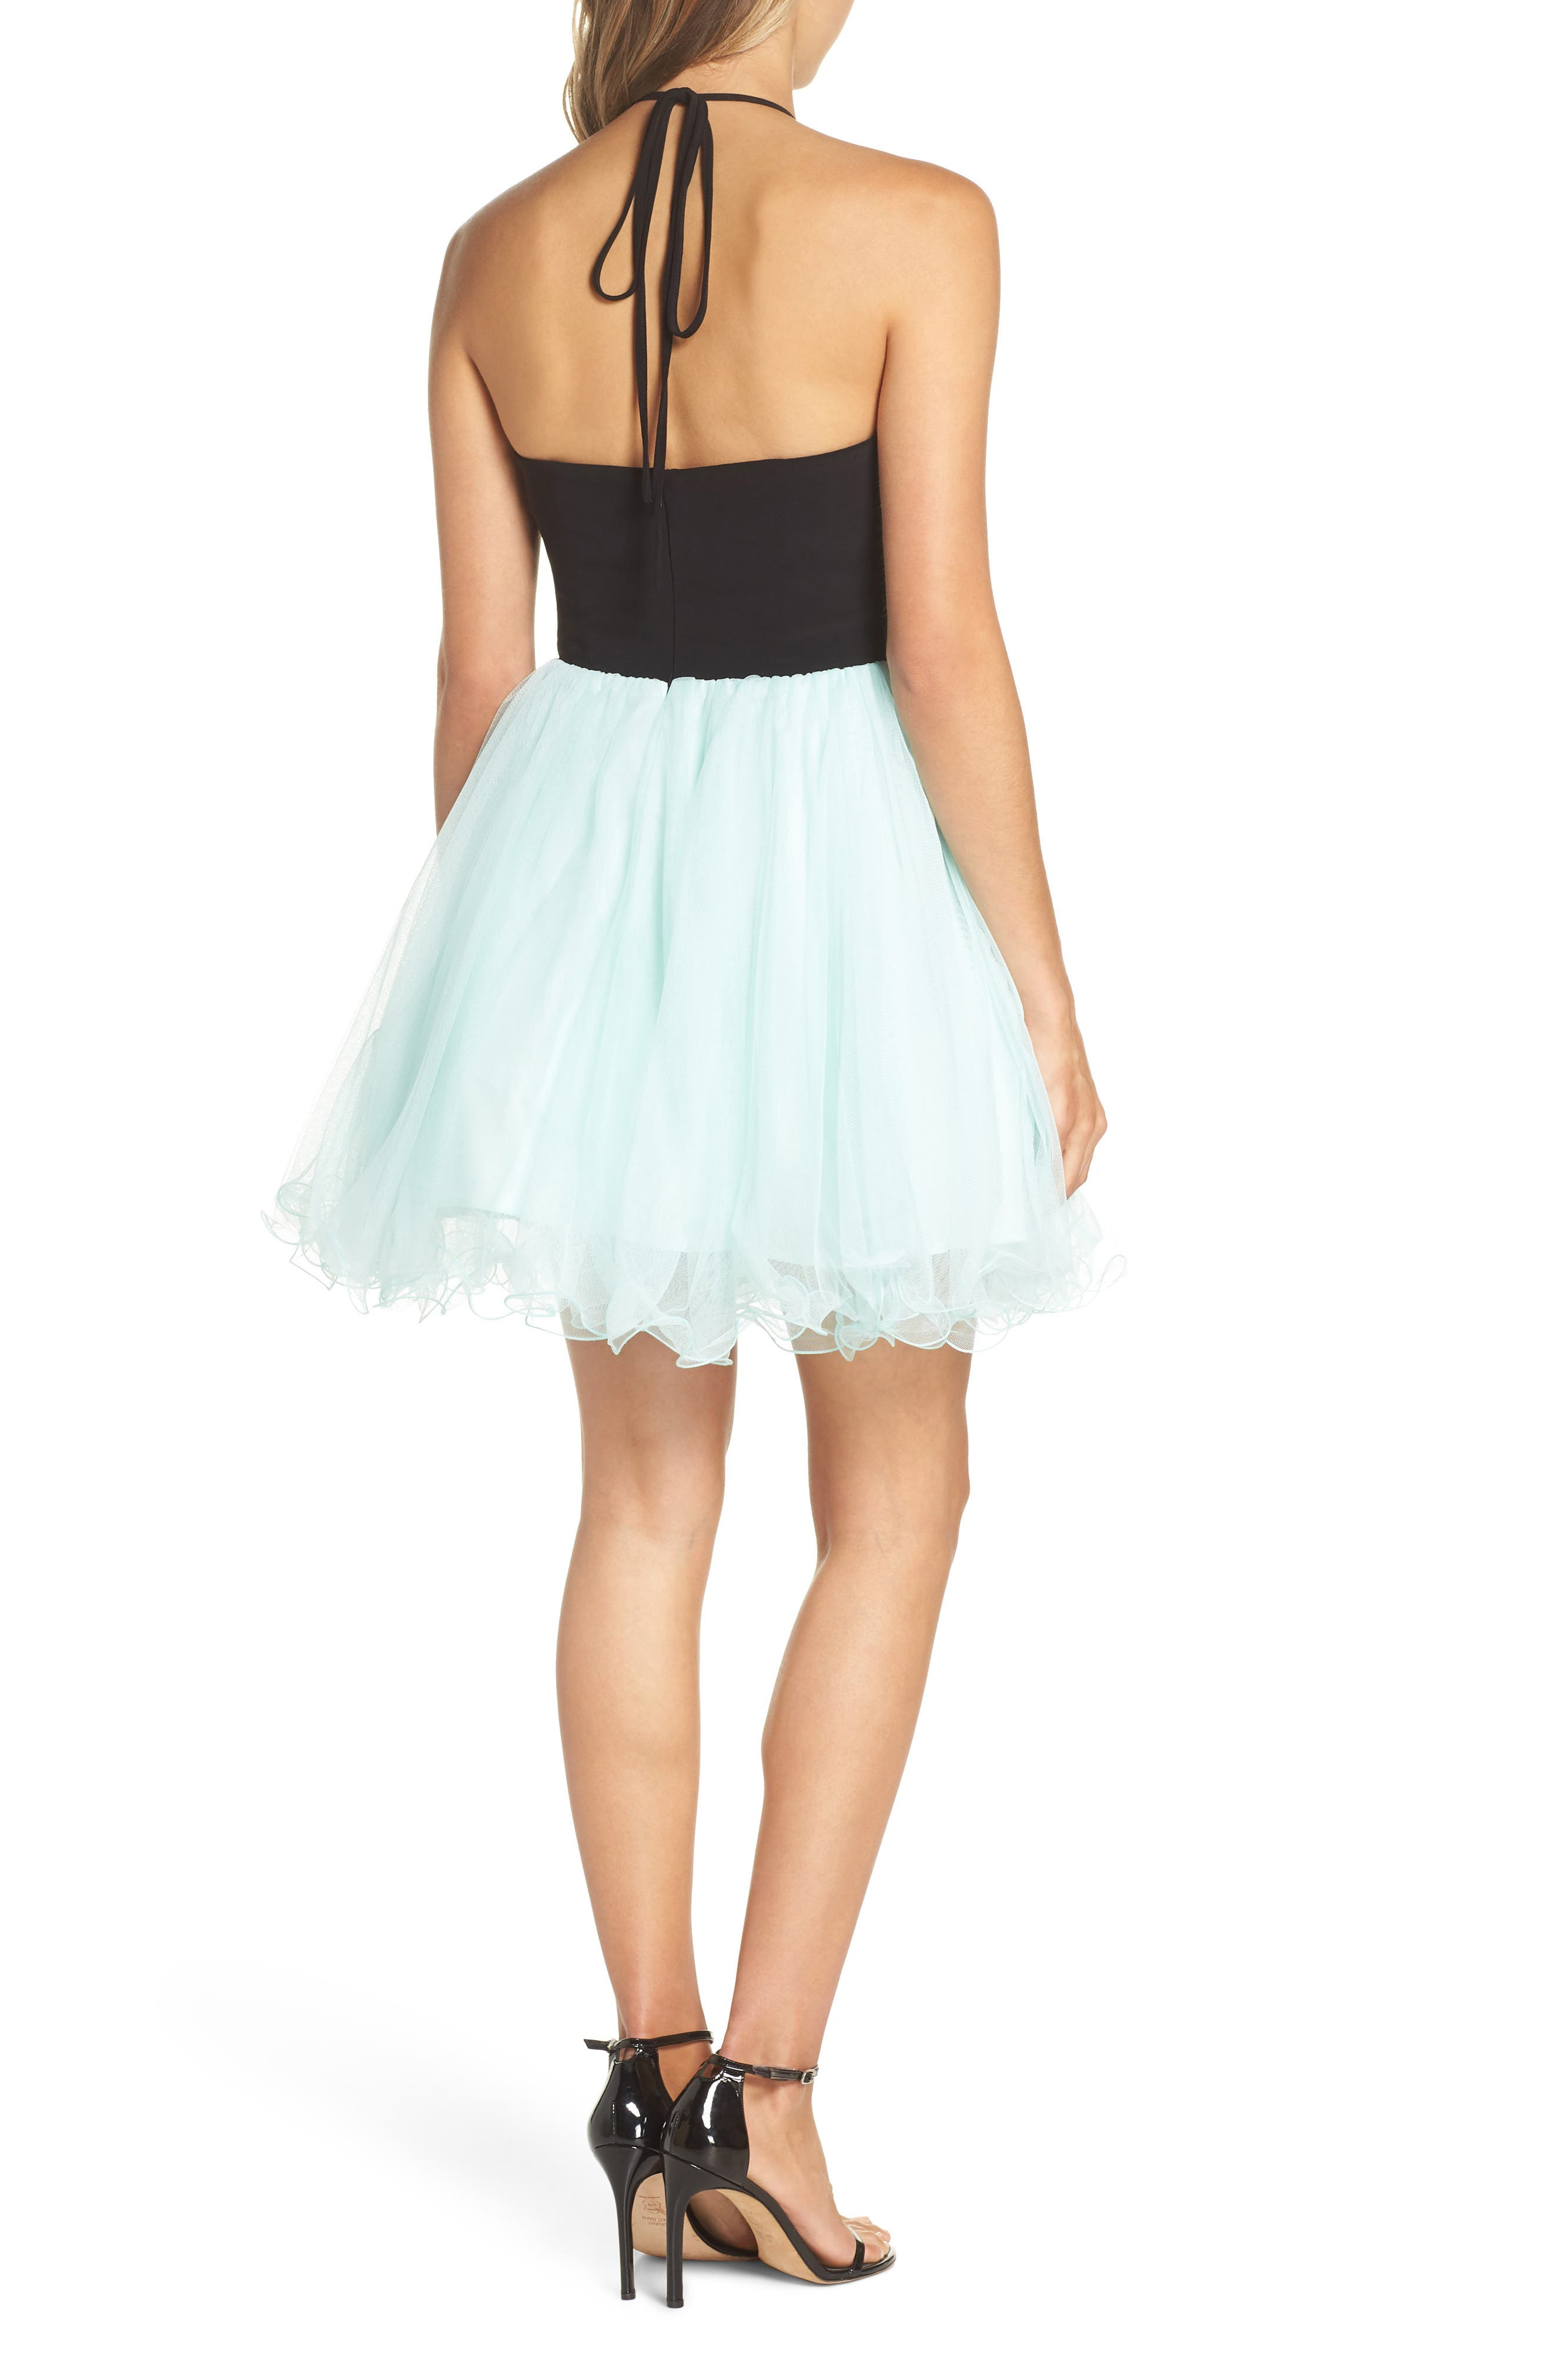 Appliqué Mesh Fit & Flare Halter Dress,                             Alternate thumbnail 2, color,                             BLACK/ MINT